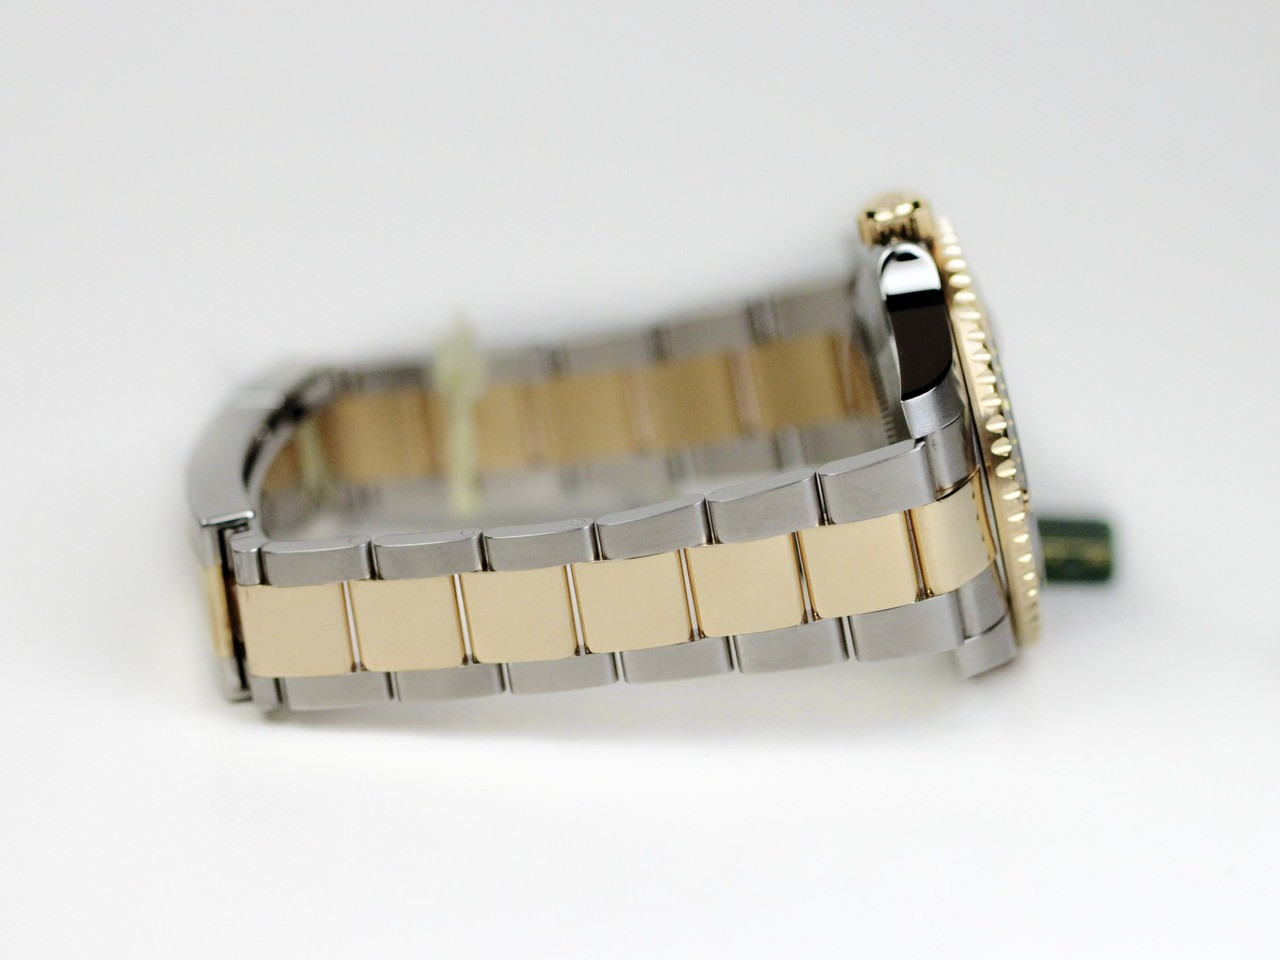 Yellow Gold and Steel Bracelet - Rolex Watch Submariner Steel and Gold 116613 - www. Legendoftime.com - Chicago Watch Center